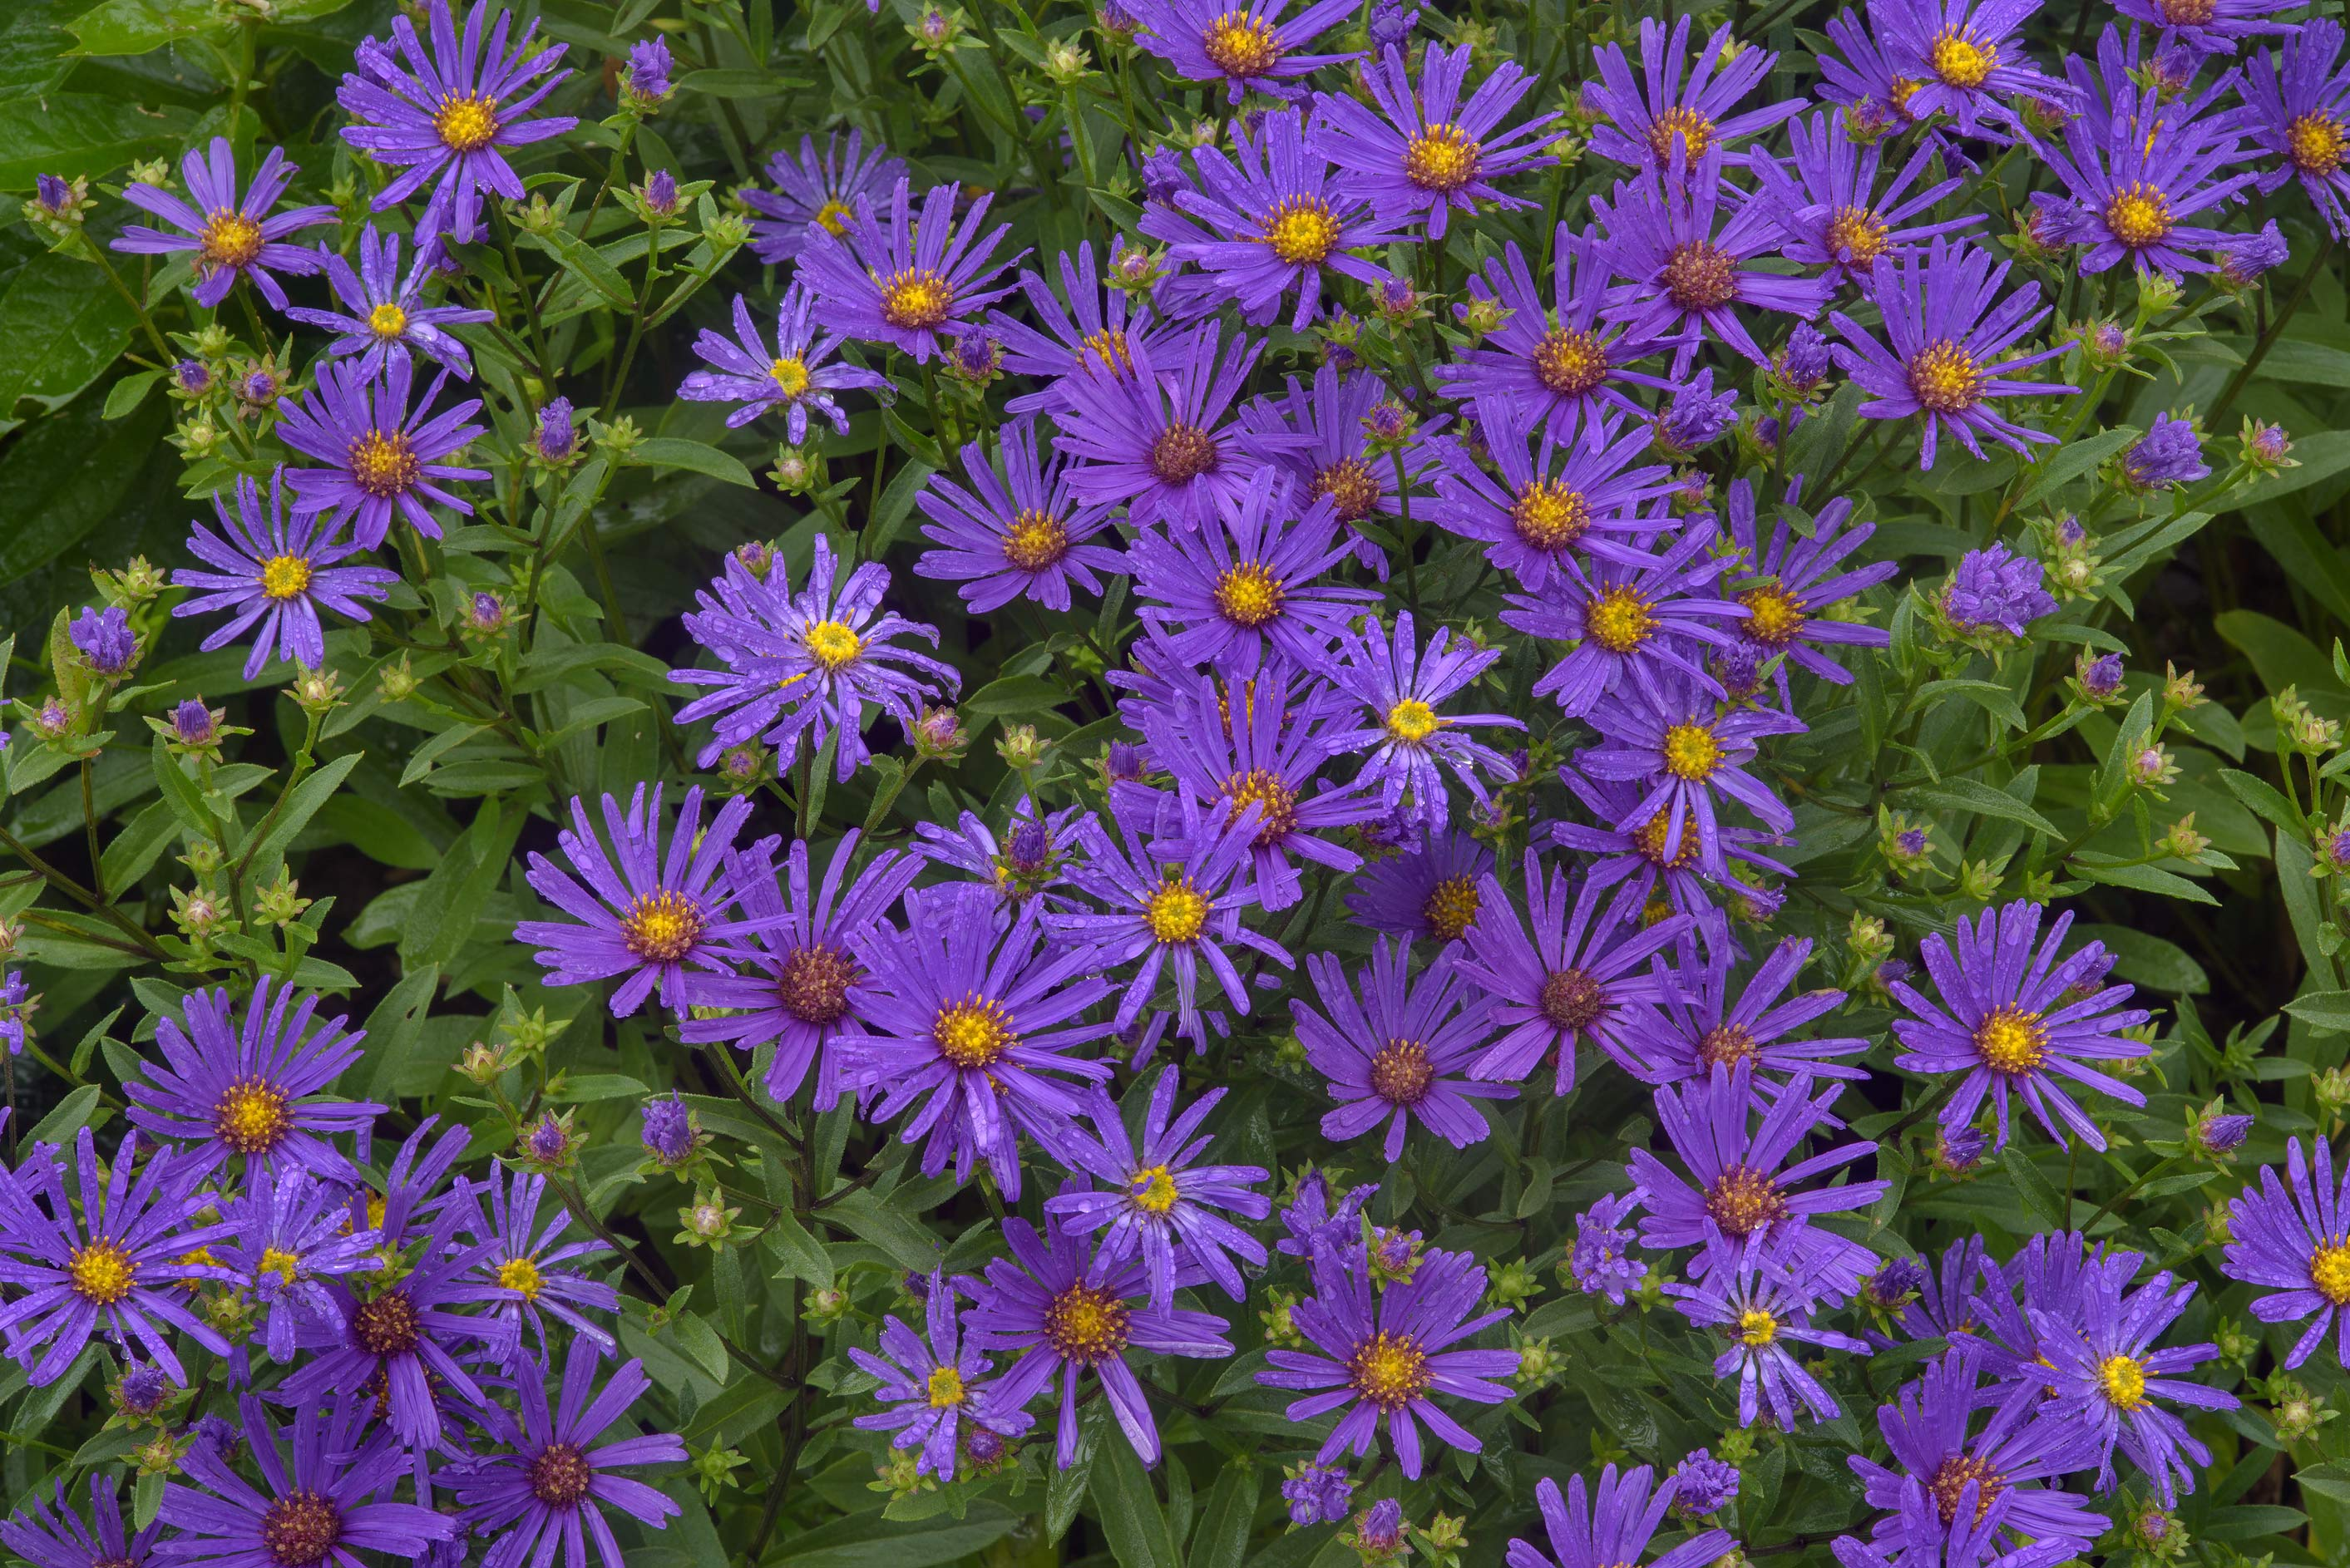 Photo 1903 15 Flowers Of Michaelmas Daisy Aster Amellus